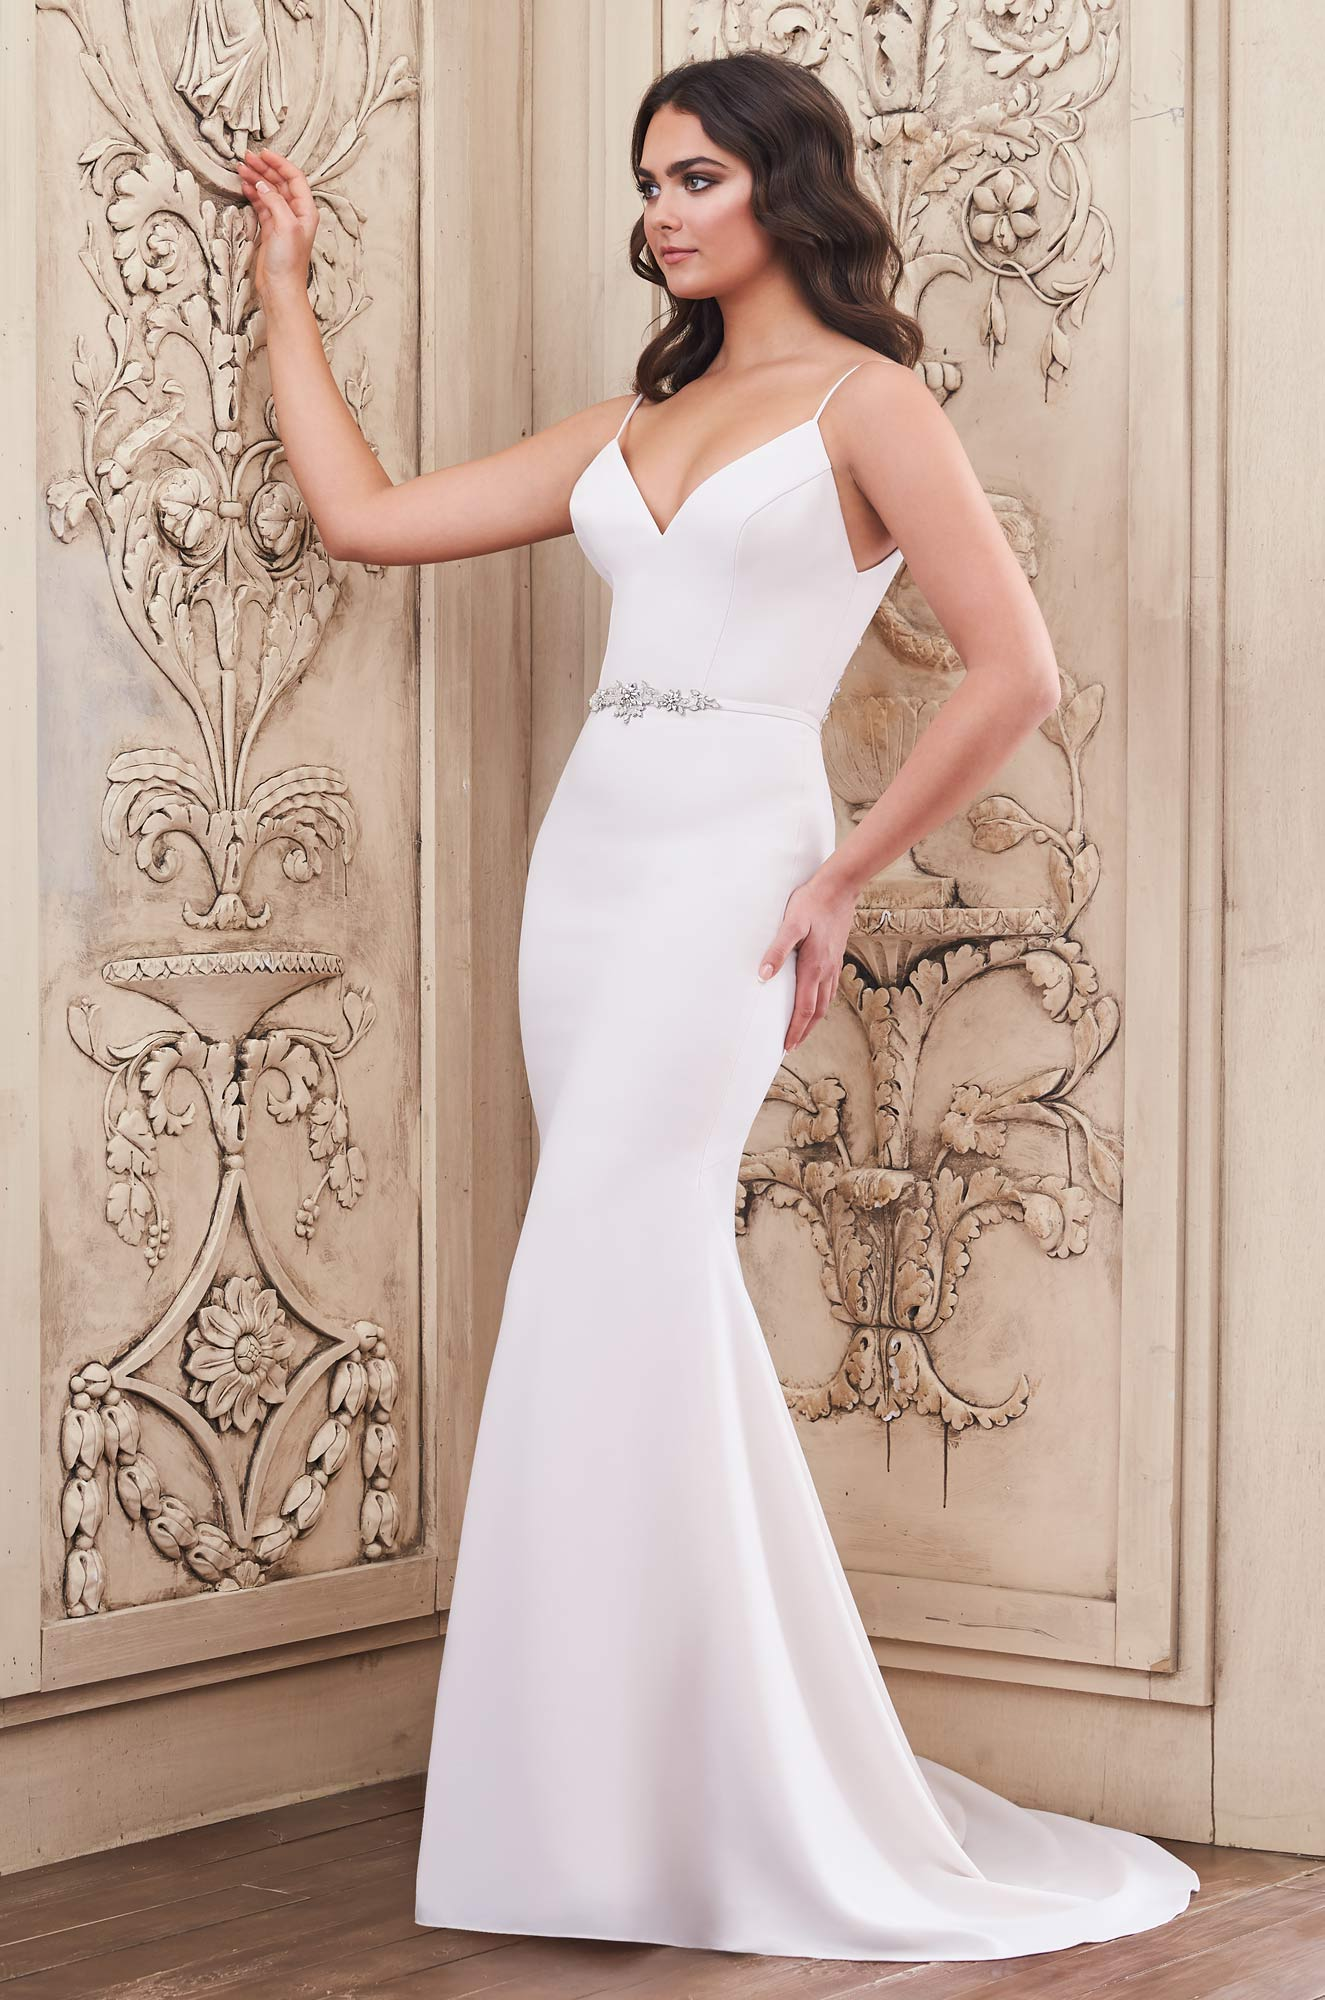 Mira Couture Paloma Blanca 4857 Wedding Dress Bridal Gown Chicago Boutique Front